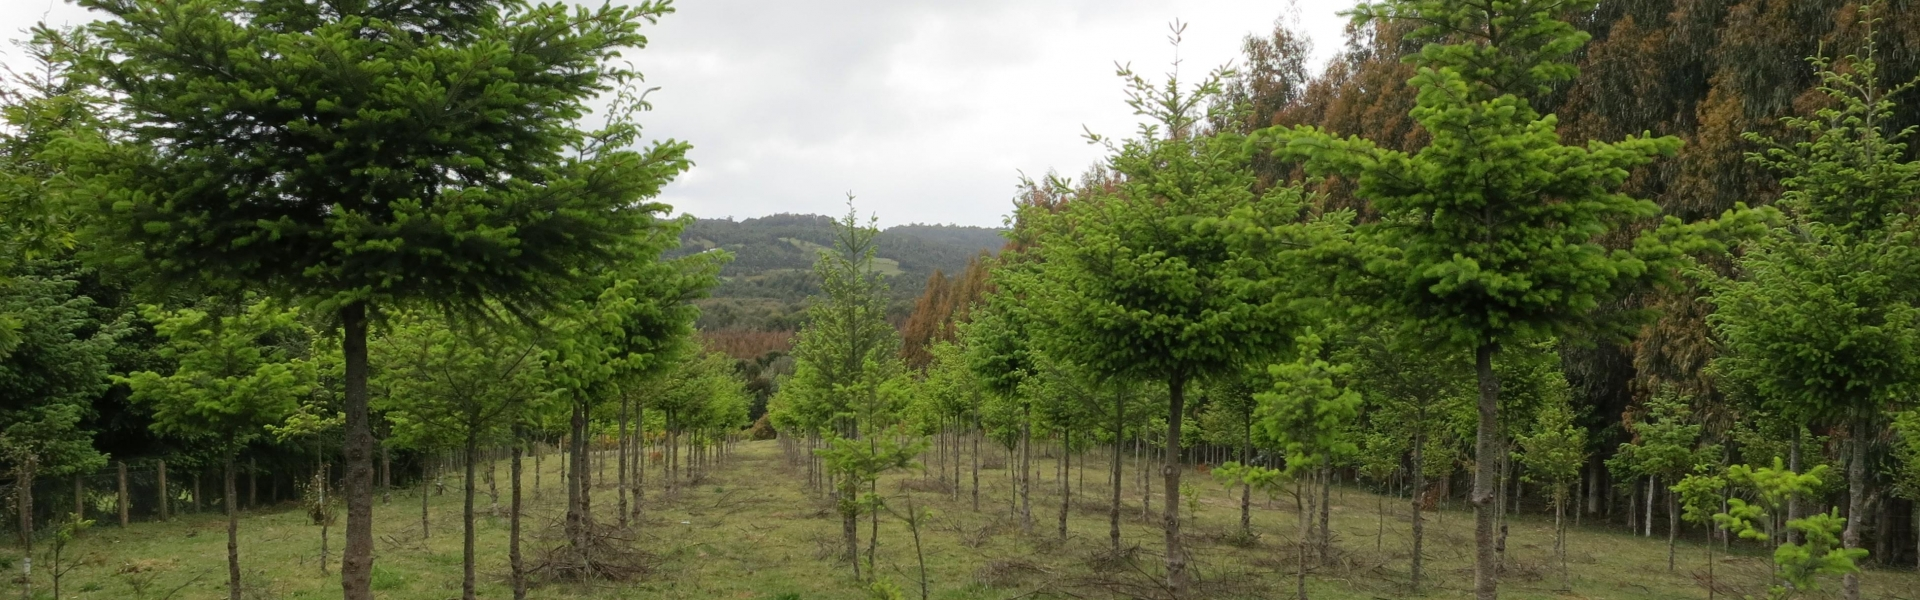 Trees planted in rows in grassy area